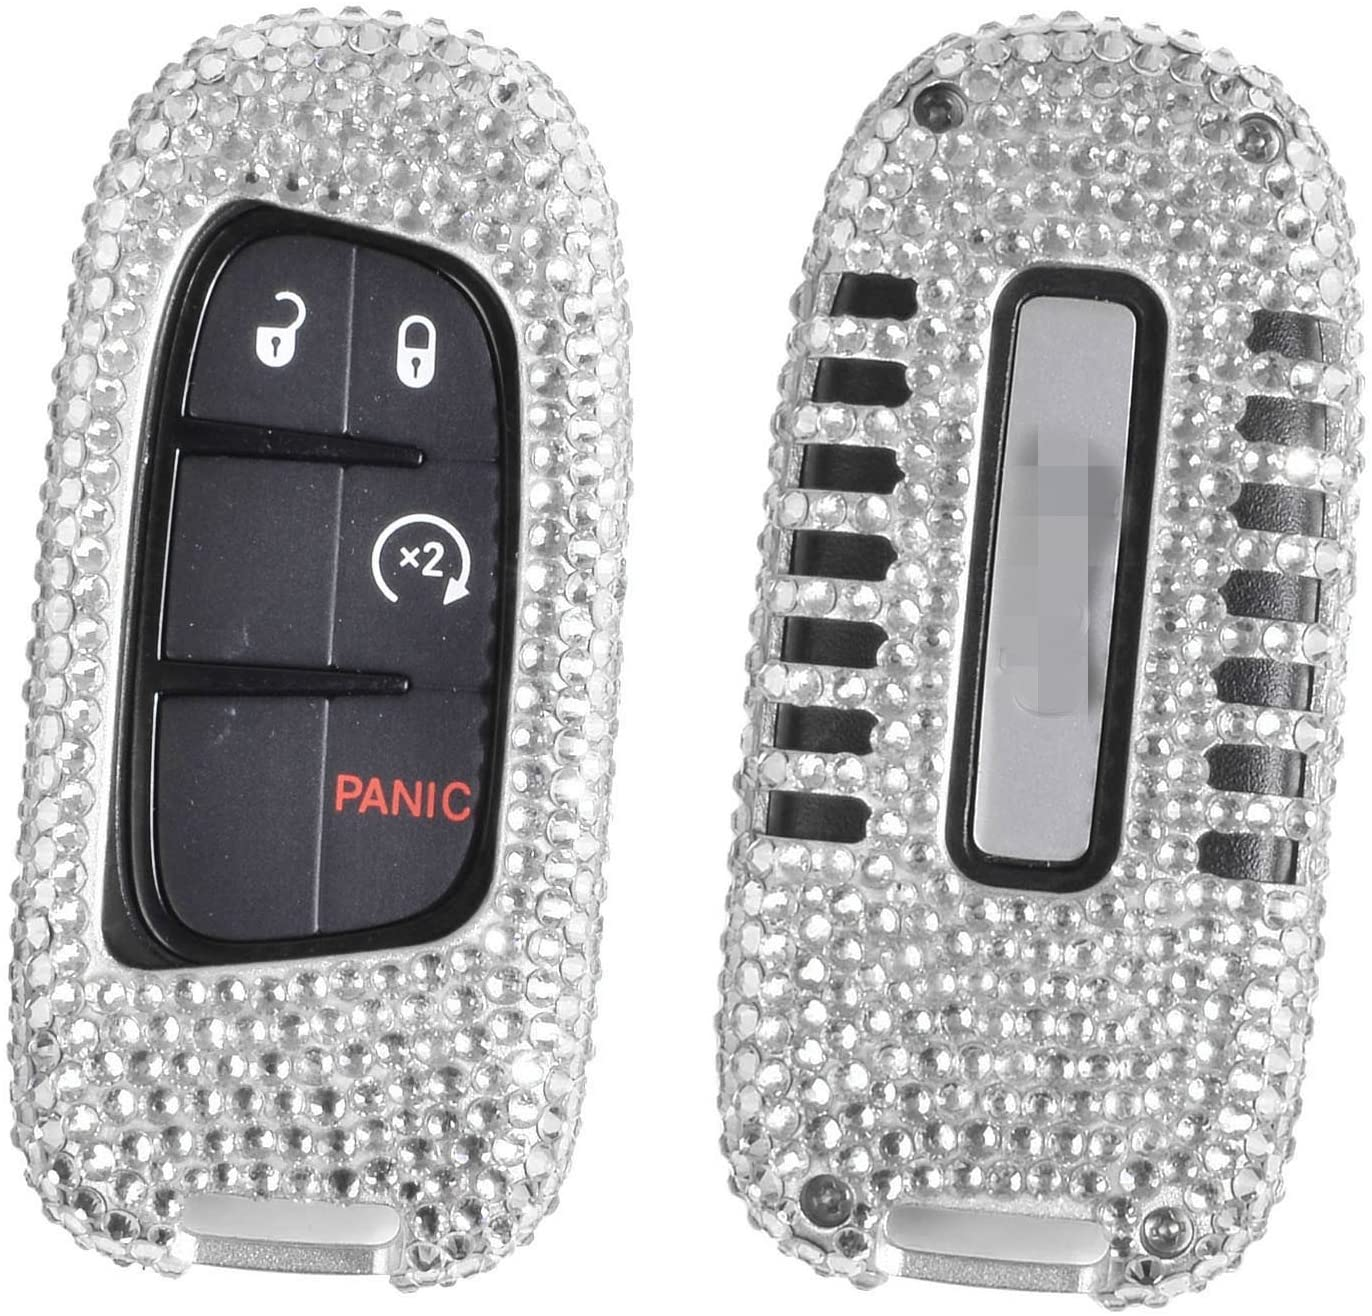 M.JVisun Handmade Car Key Fob Cover for Jeep Grand Cherokee SRT Cherokee Renegade Compass Smart Remote Key, Diamond Bling Crystals Aluminum Key Protector Case Cover - Silver